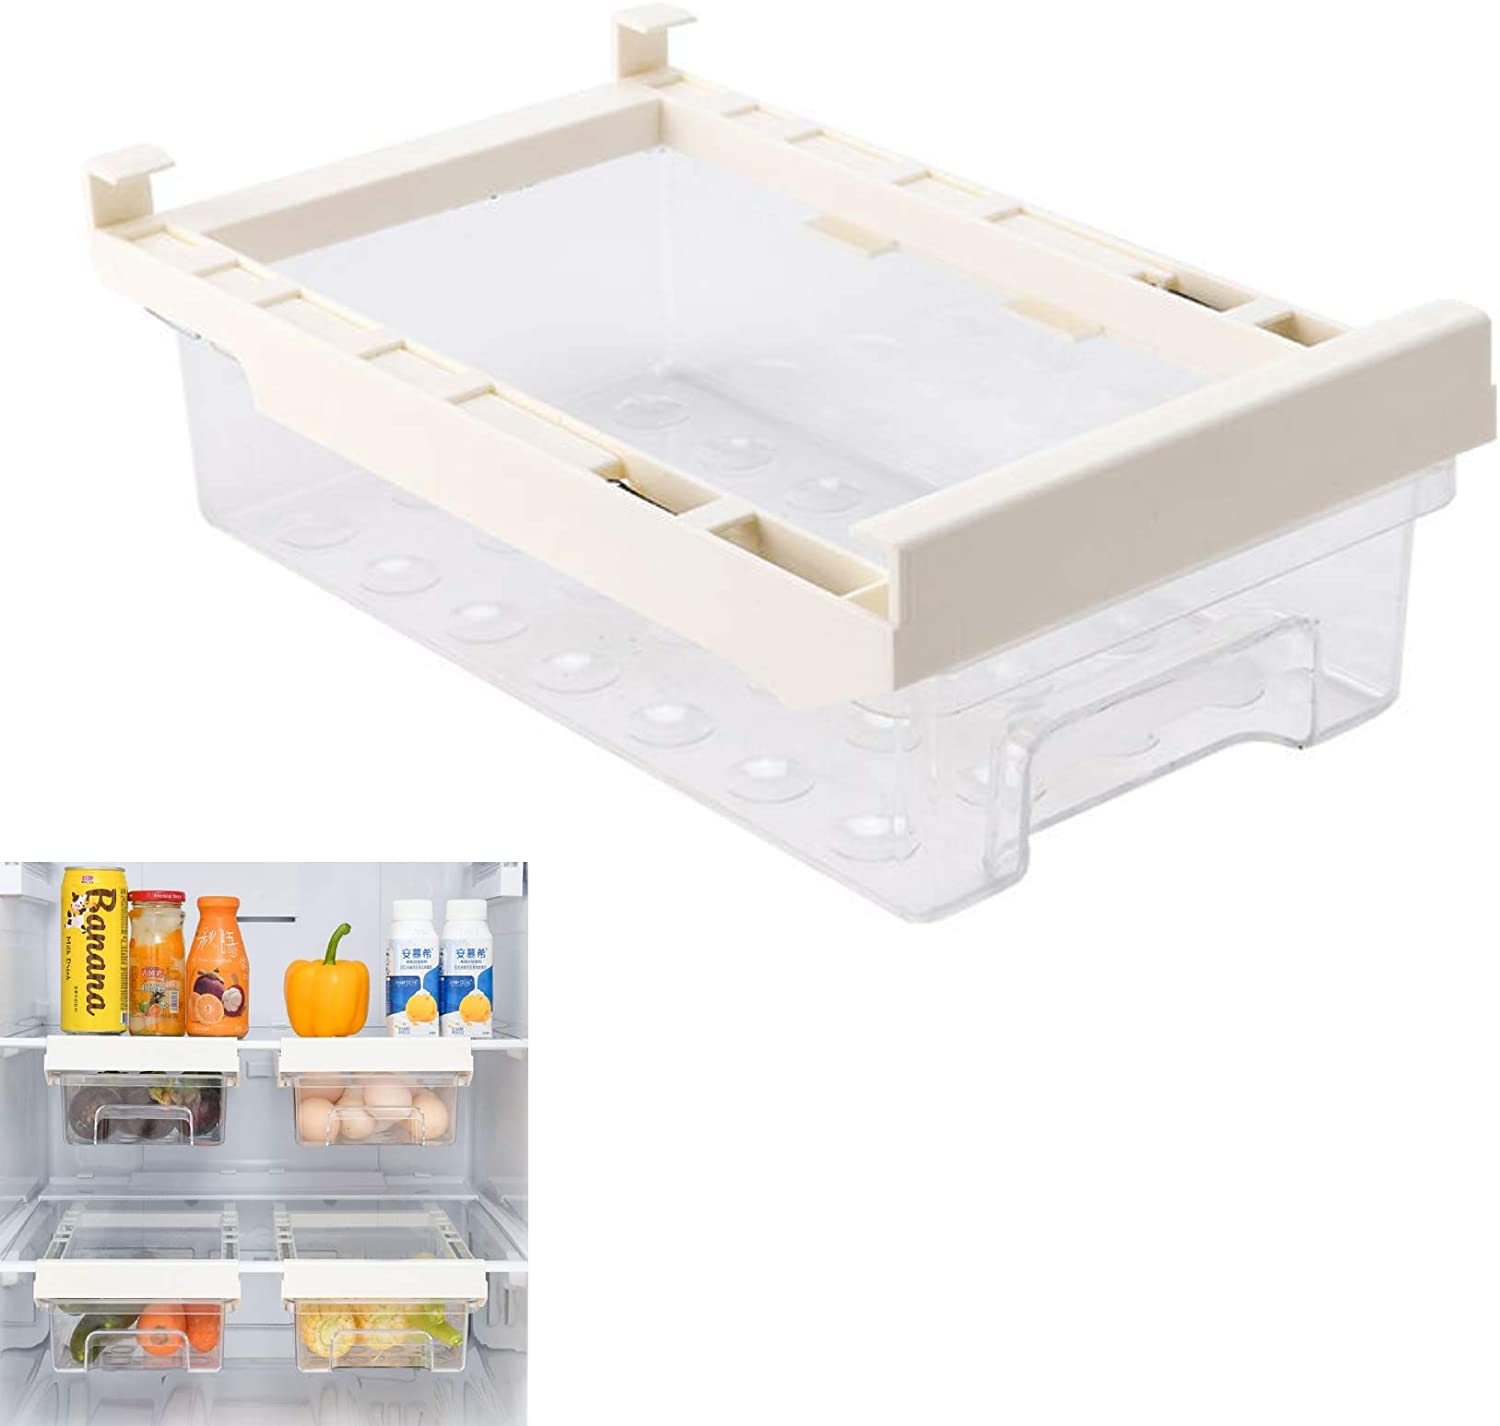 Diskary Fridge Drawer Organizer, Refrigerator Organizer Bins, Pull Out with Handle, Fridge Shelf Holder Storage Box, Clear Container for Food Drinks Eggs Fruit (Without Partition)